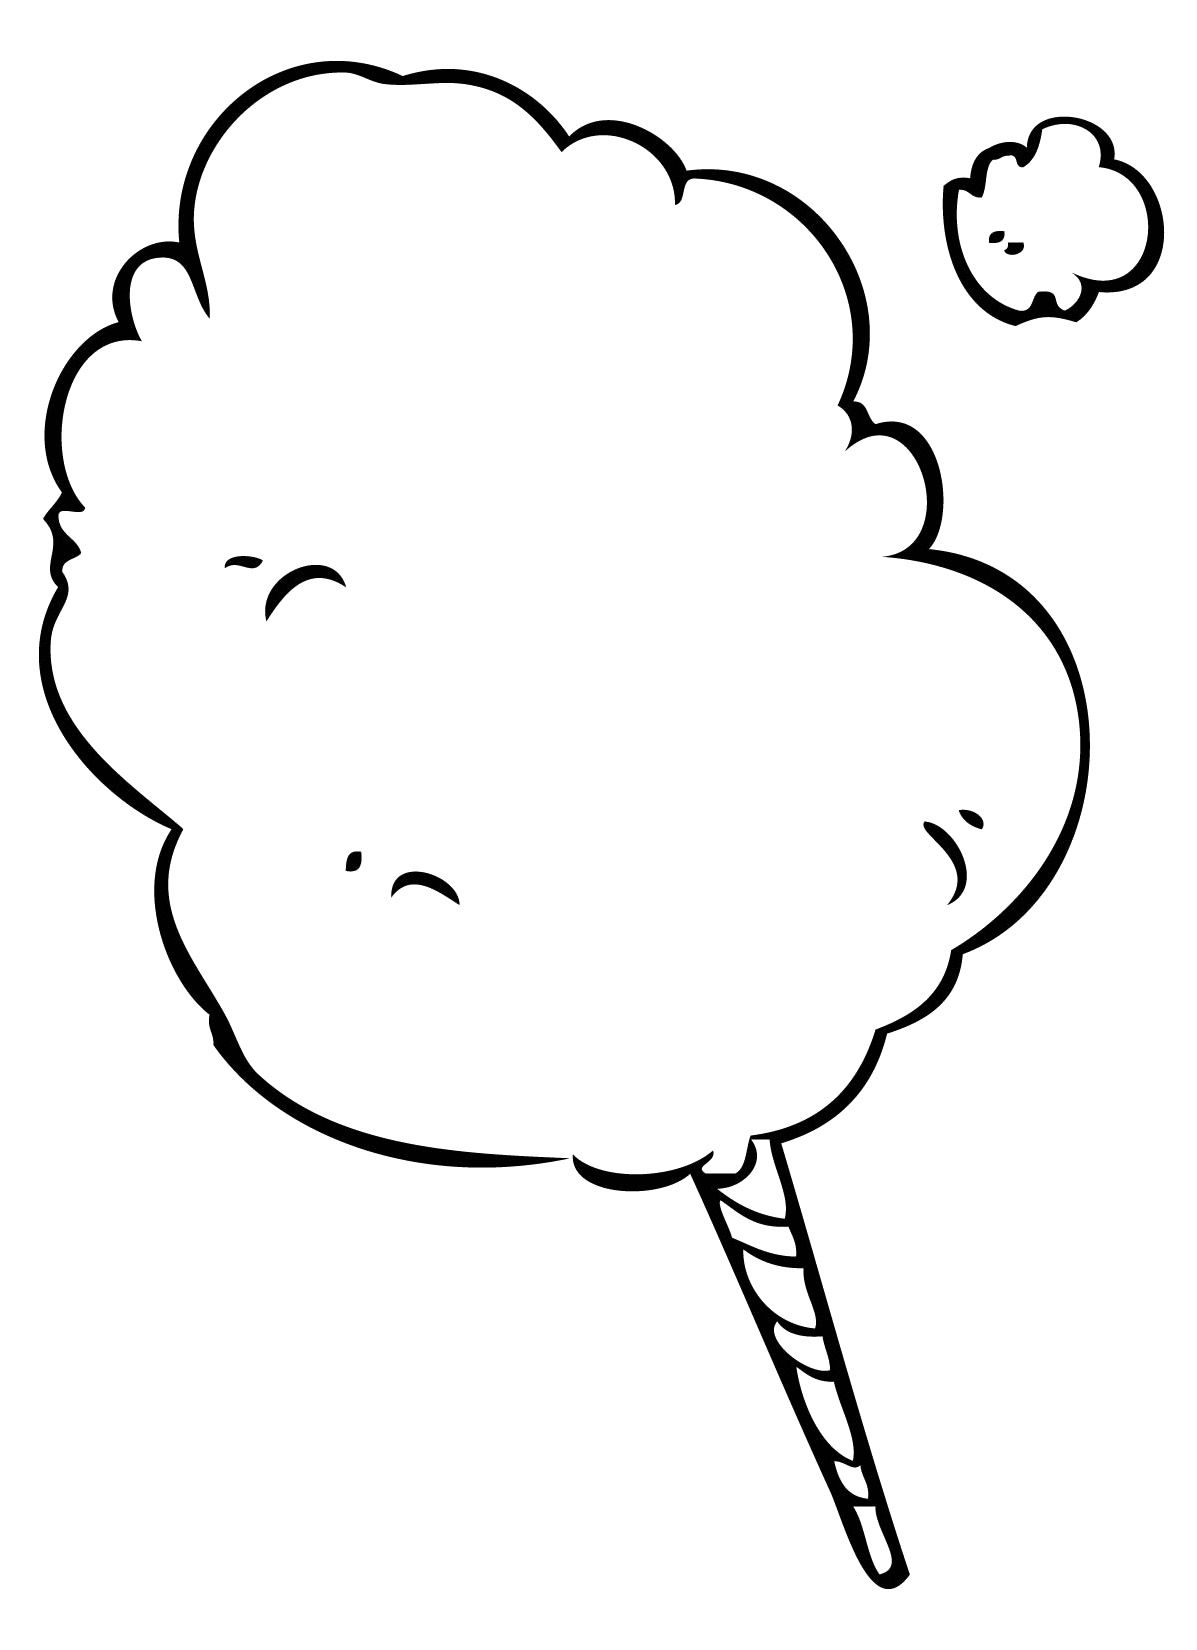 cotton candy coloring pages 74 free printable coloring pages jpg